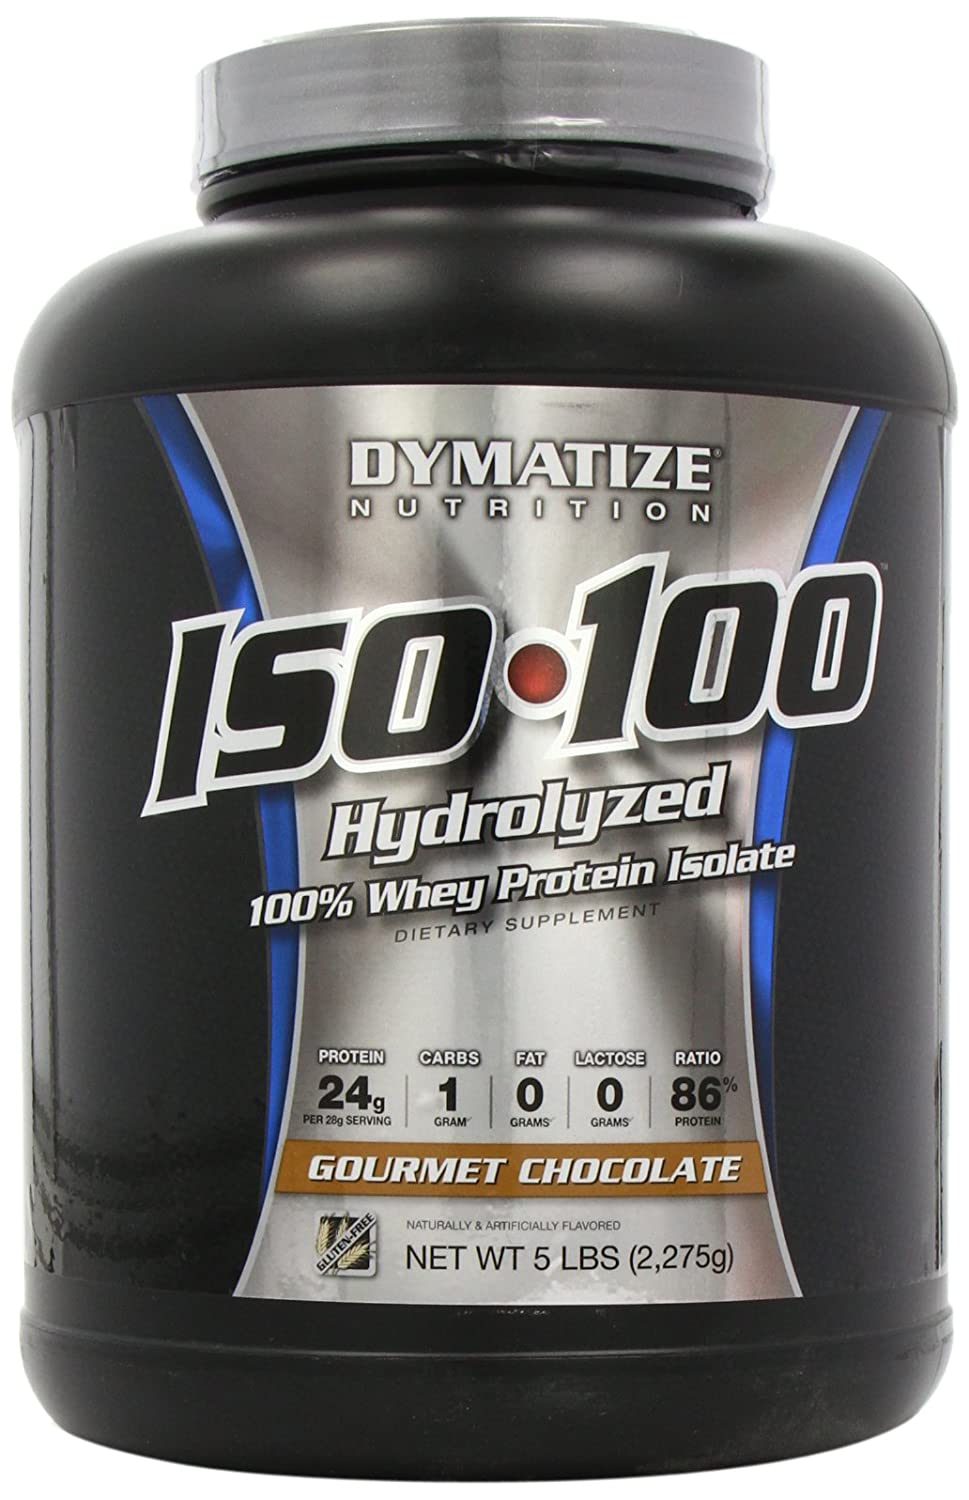 dymatize nutrition iso 100 whey protein powder buy cheap whey protein. Black Bedroom Furniture Sets. Home Design Ideas